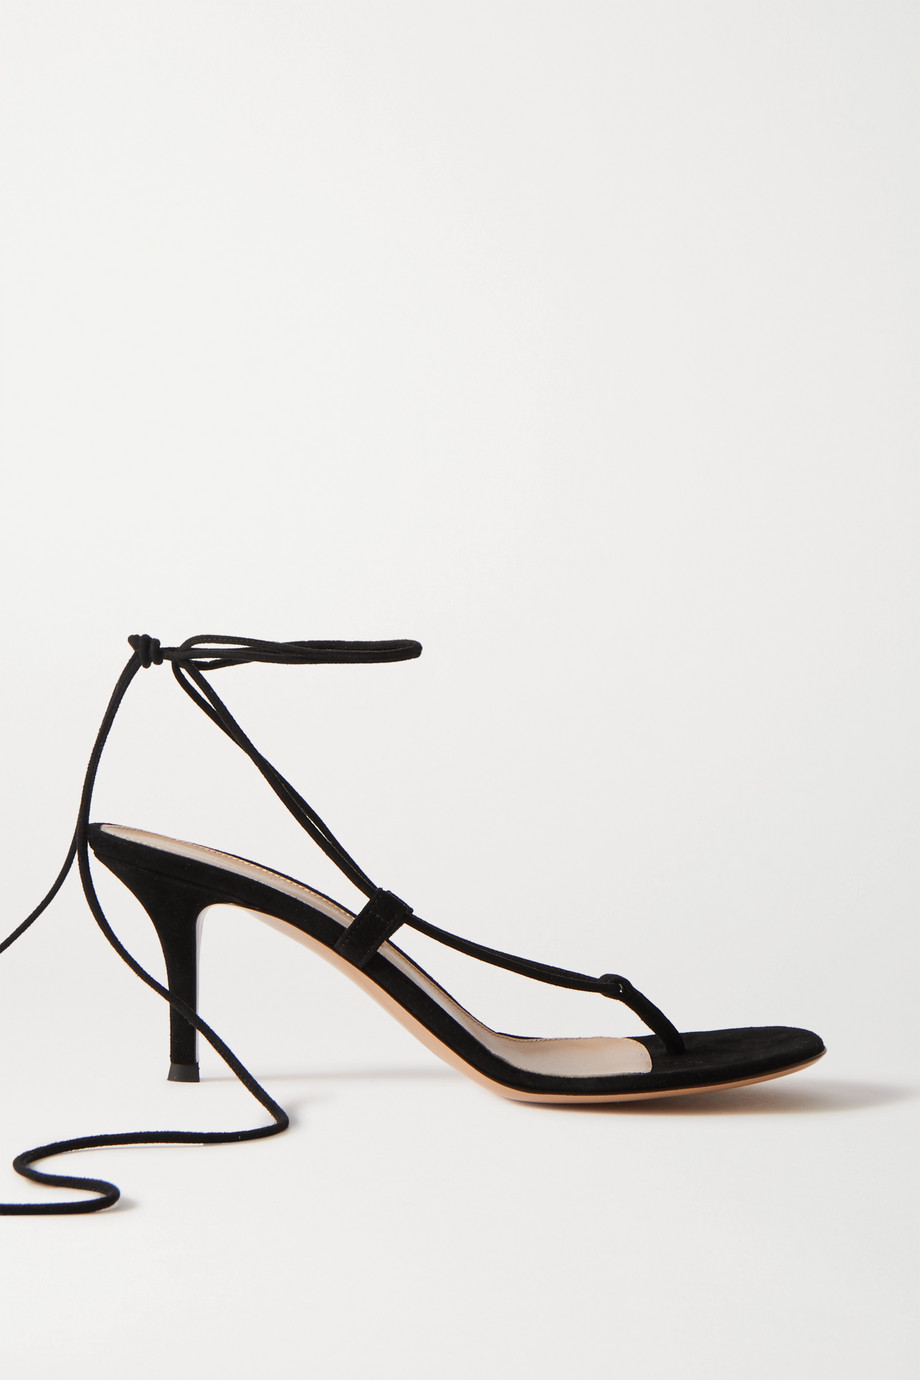 Gianvito Rossi 70 suede sandals